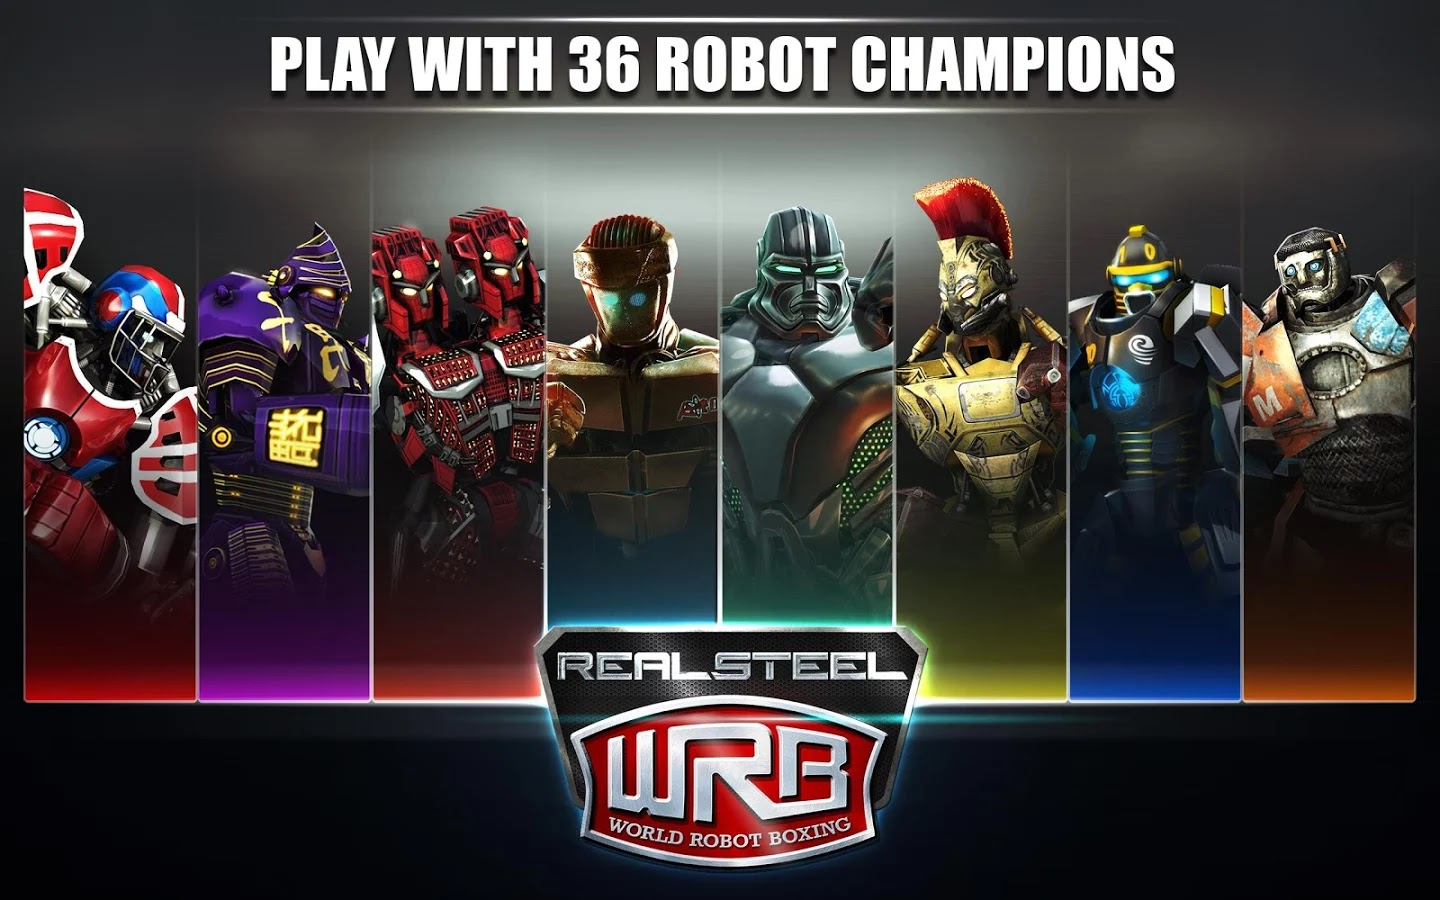 Real steel world robot boxing (android) reviews at android quality.